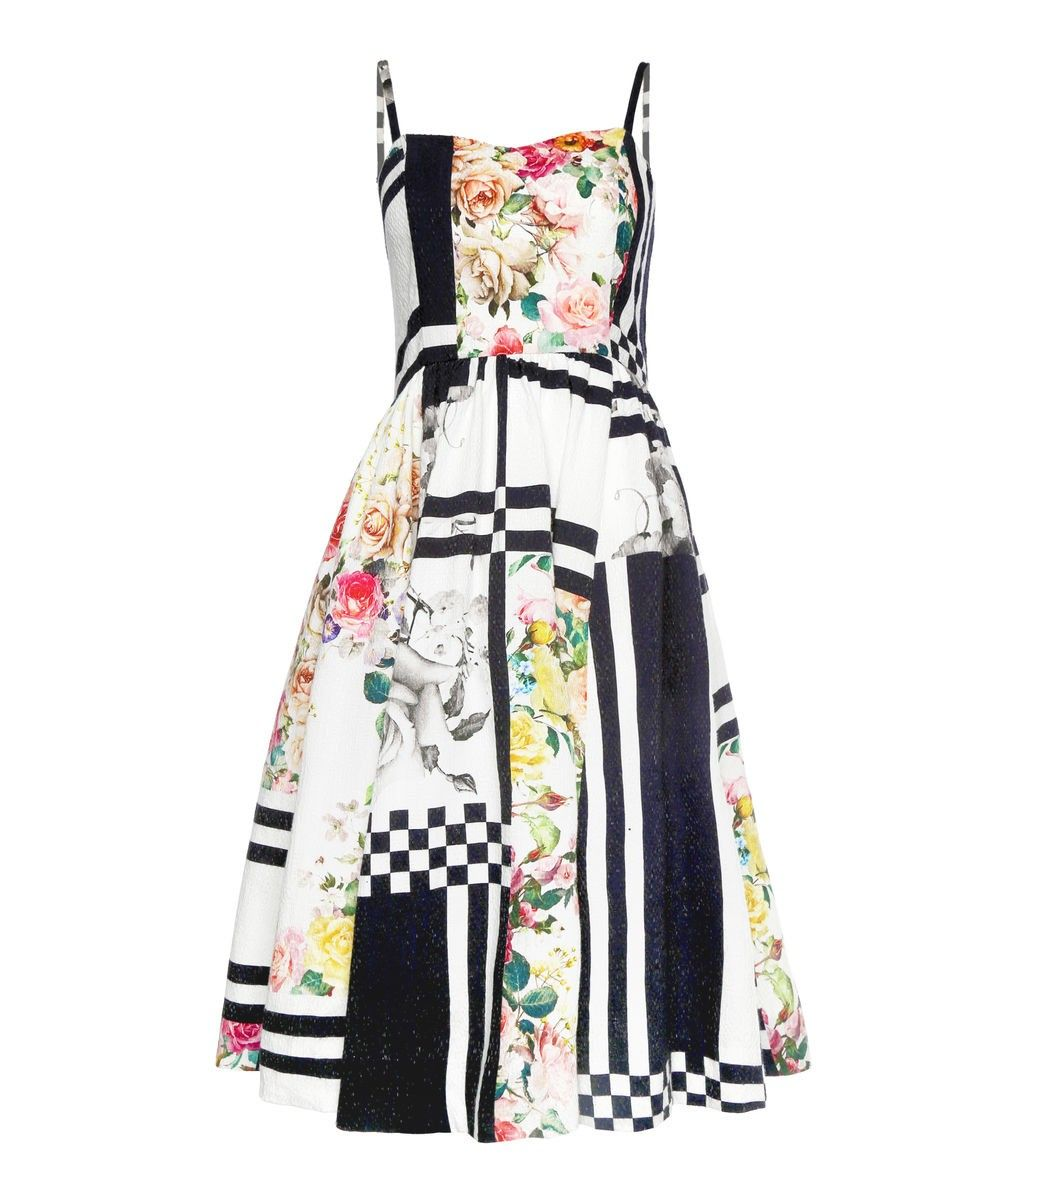 Alannah hill online boutique women s clothing to catch a thief dress ms monte carlo new arrivals